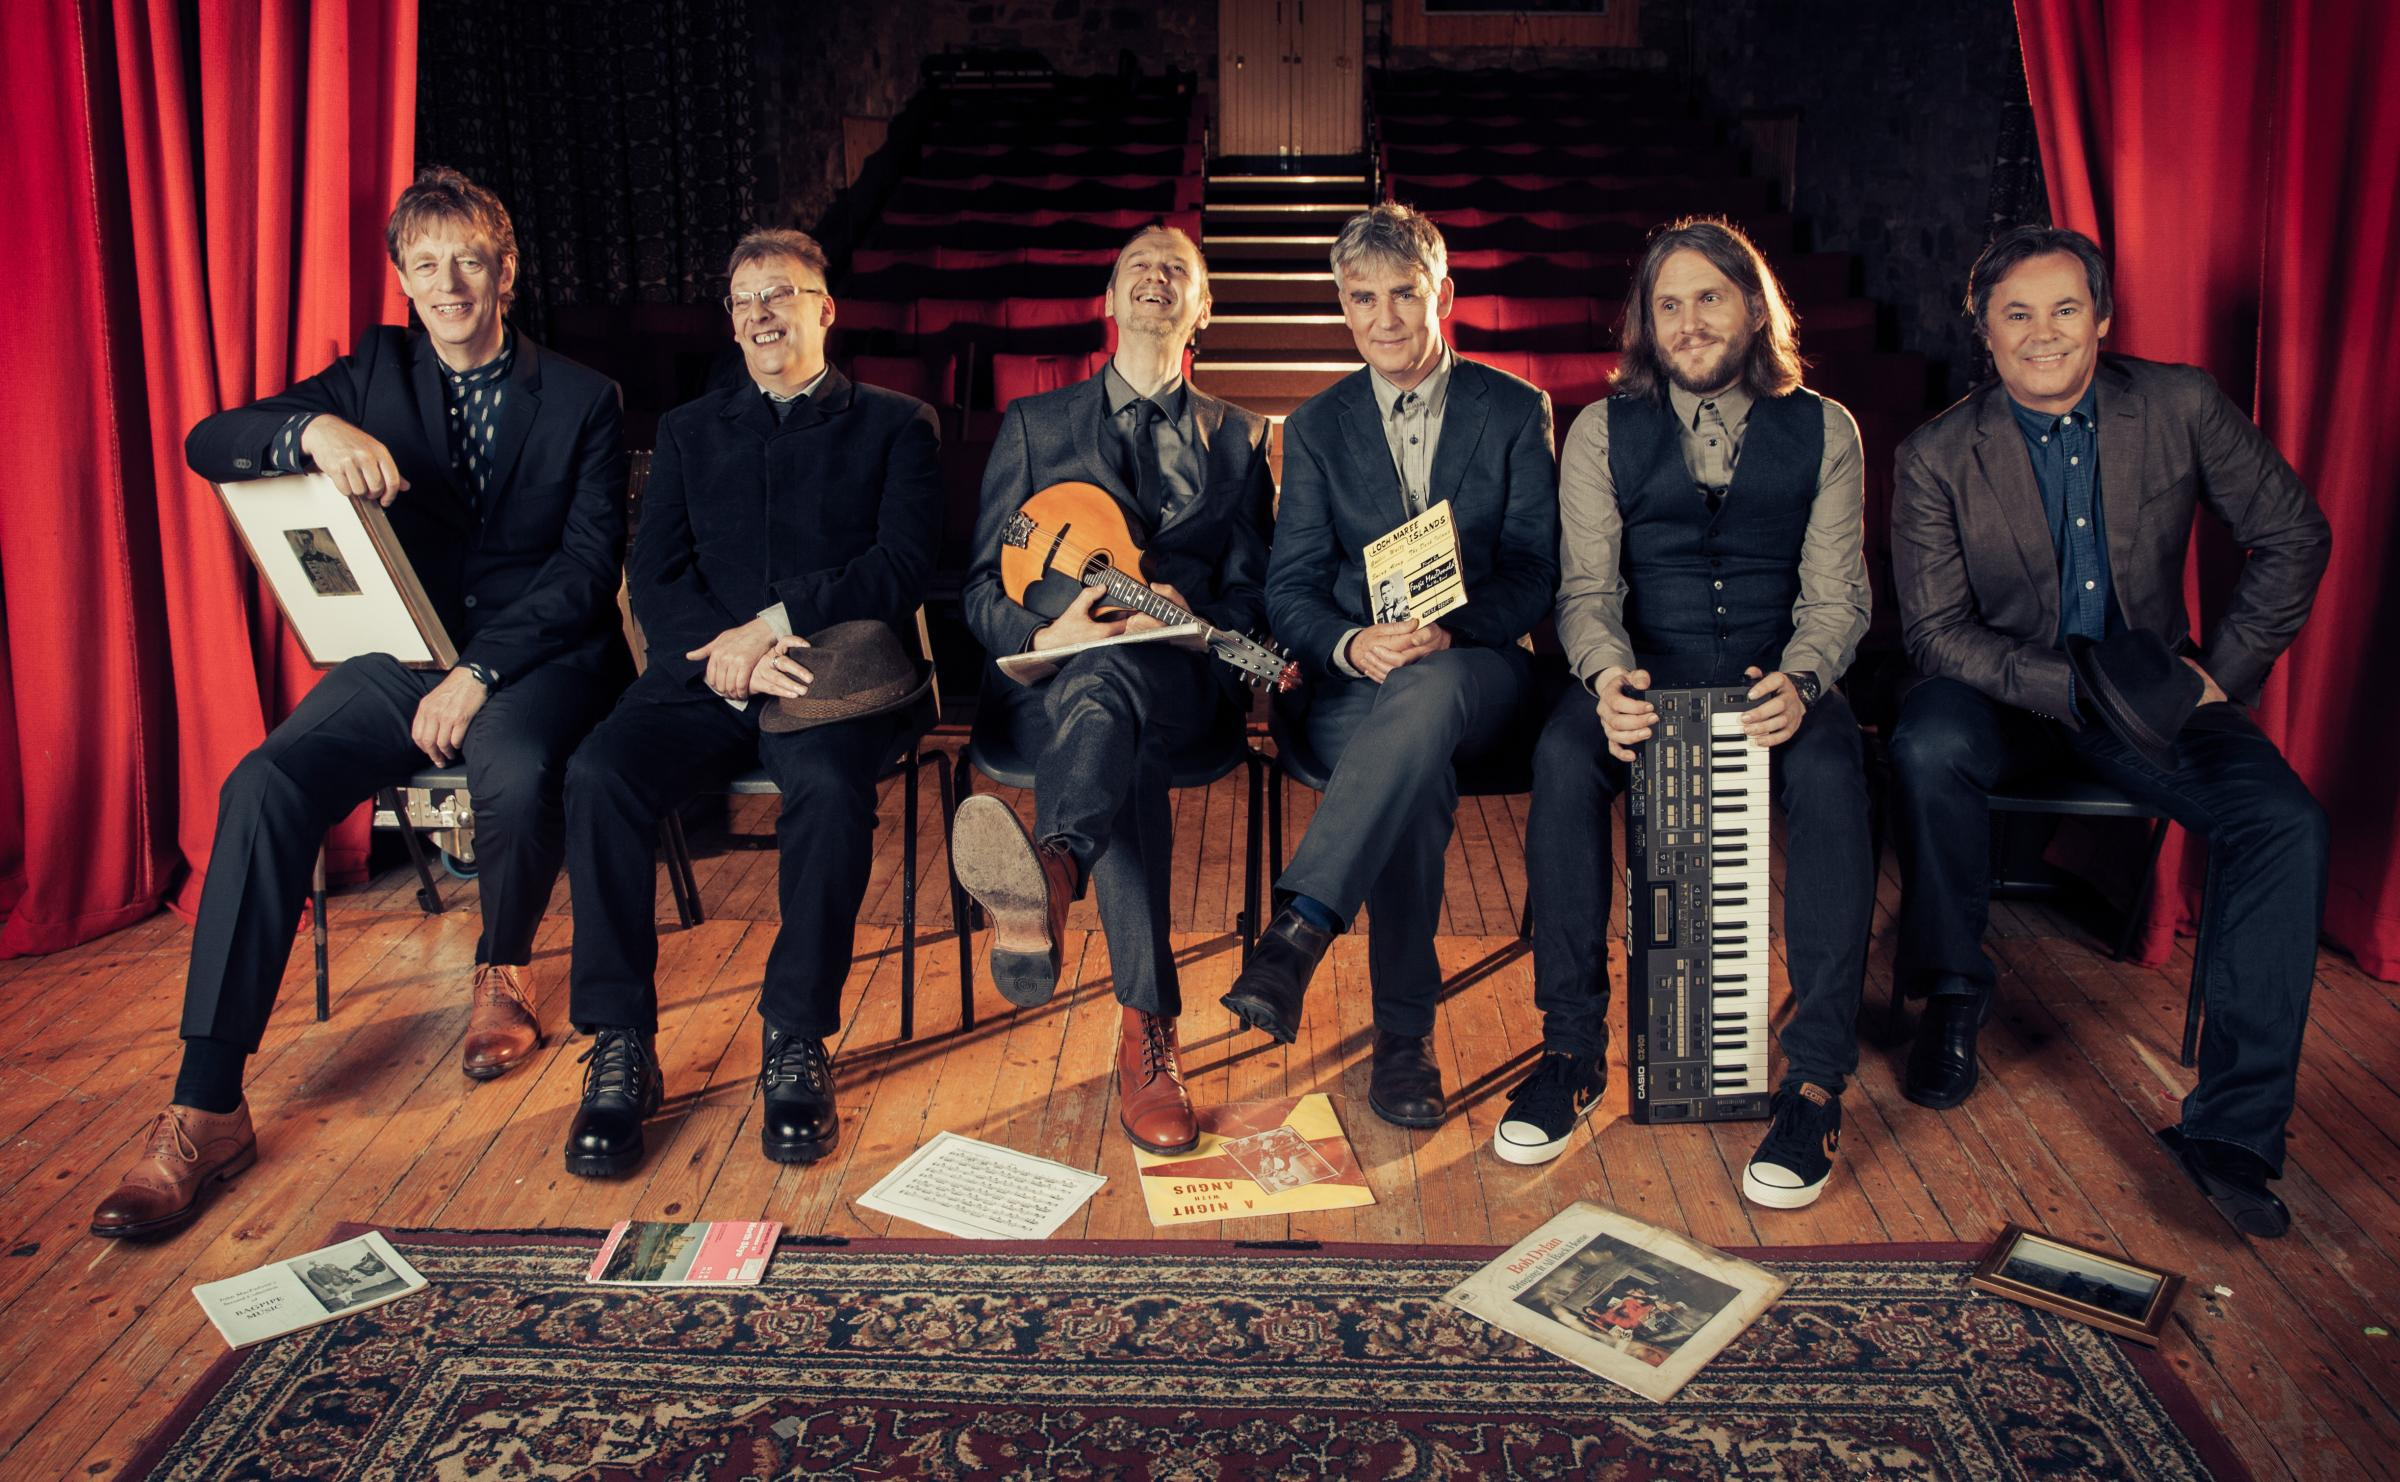 Runrig's songs have tackled topics including mass immigration and the Highland Clearances